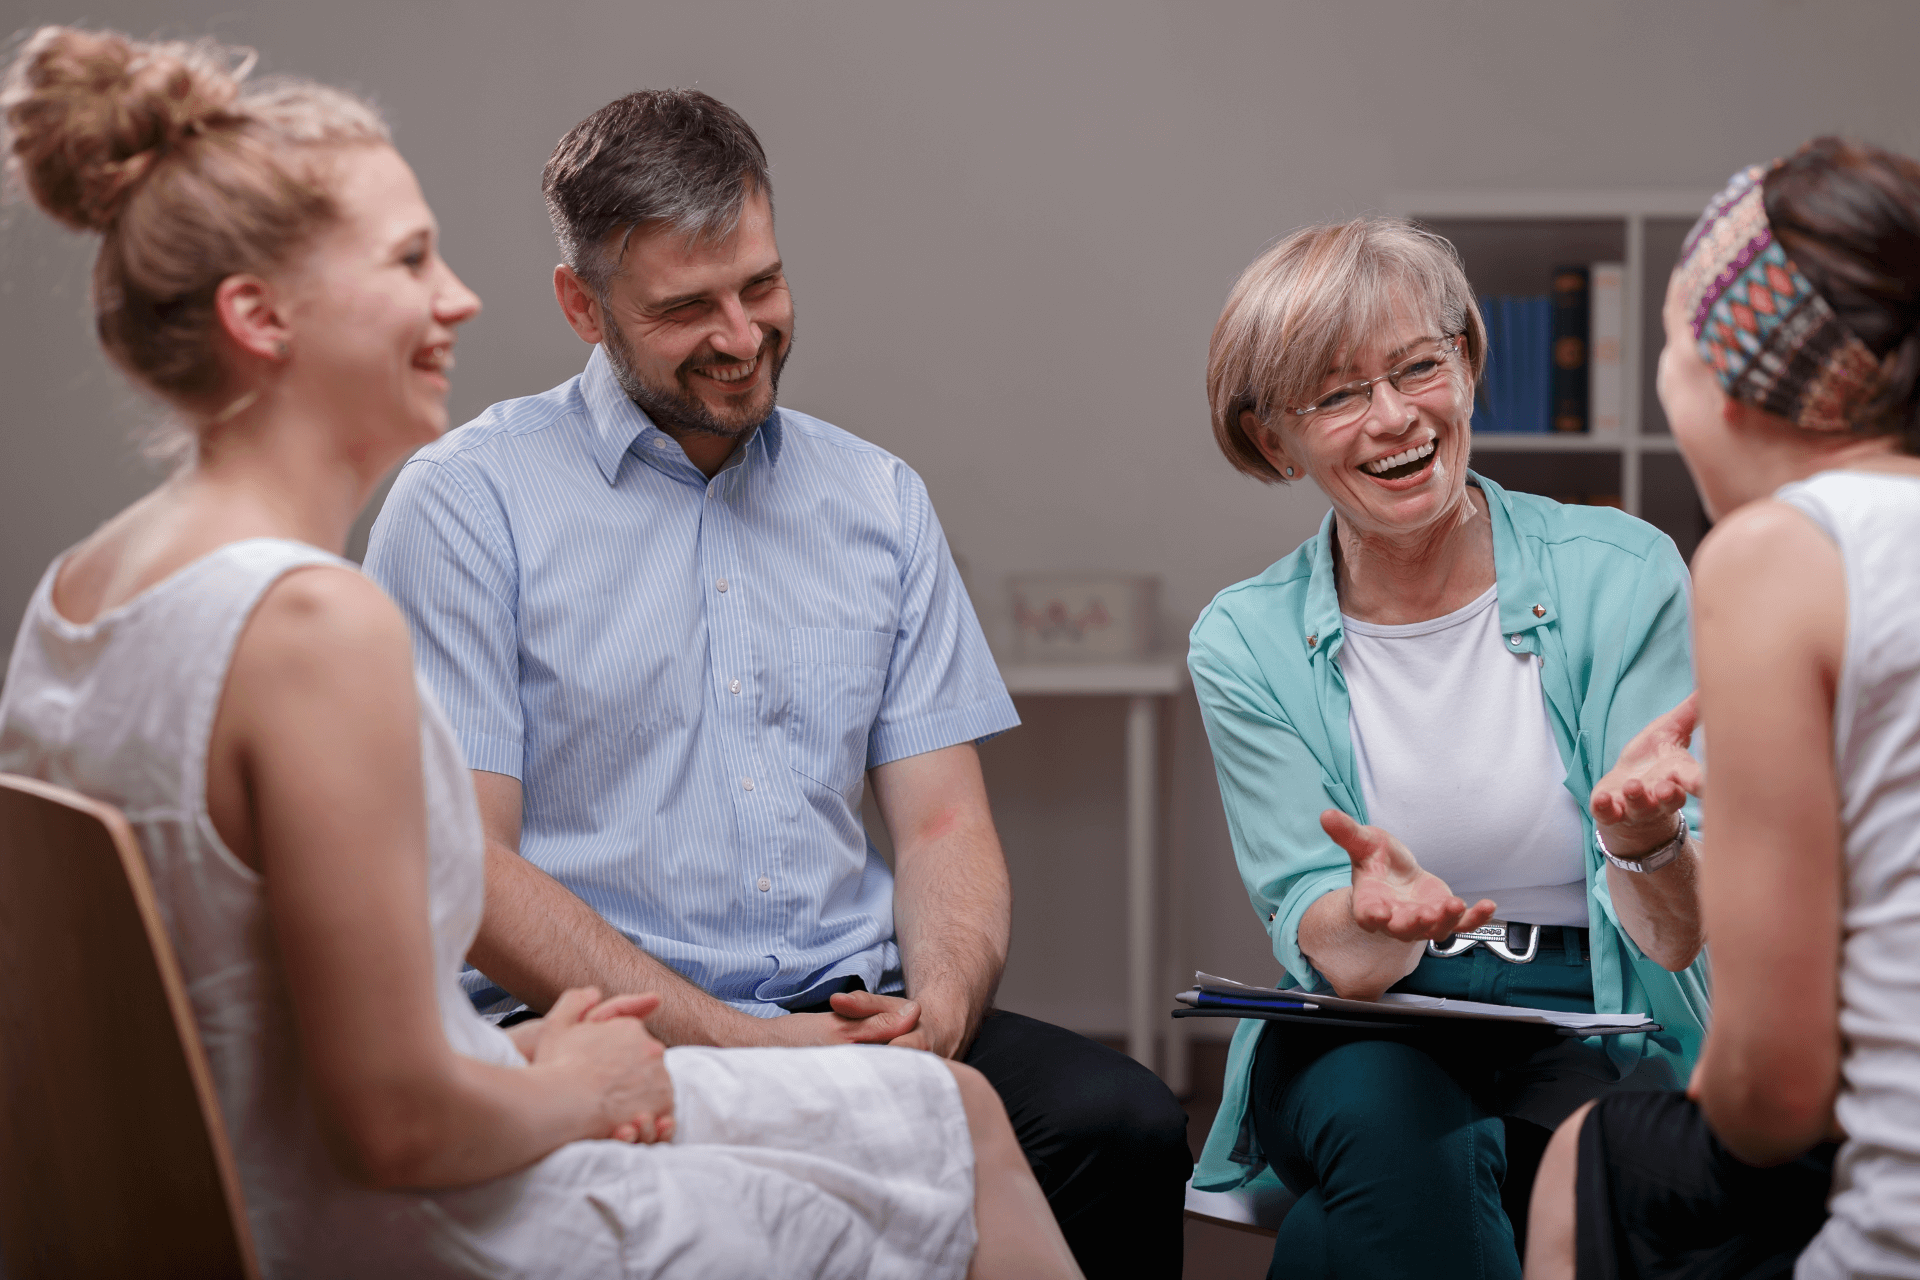 Group of people in a support session laughing